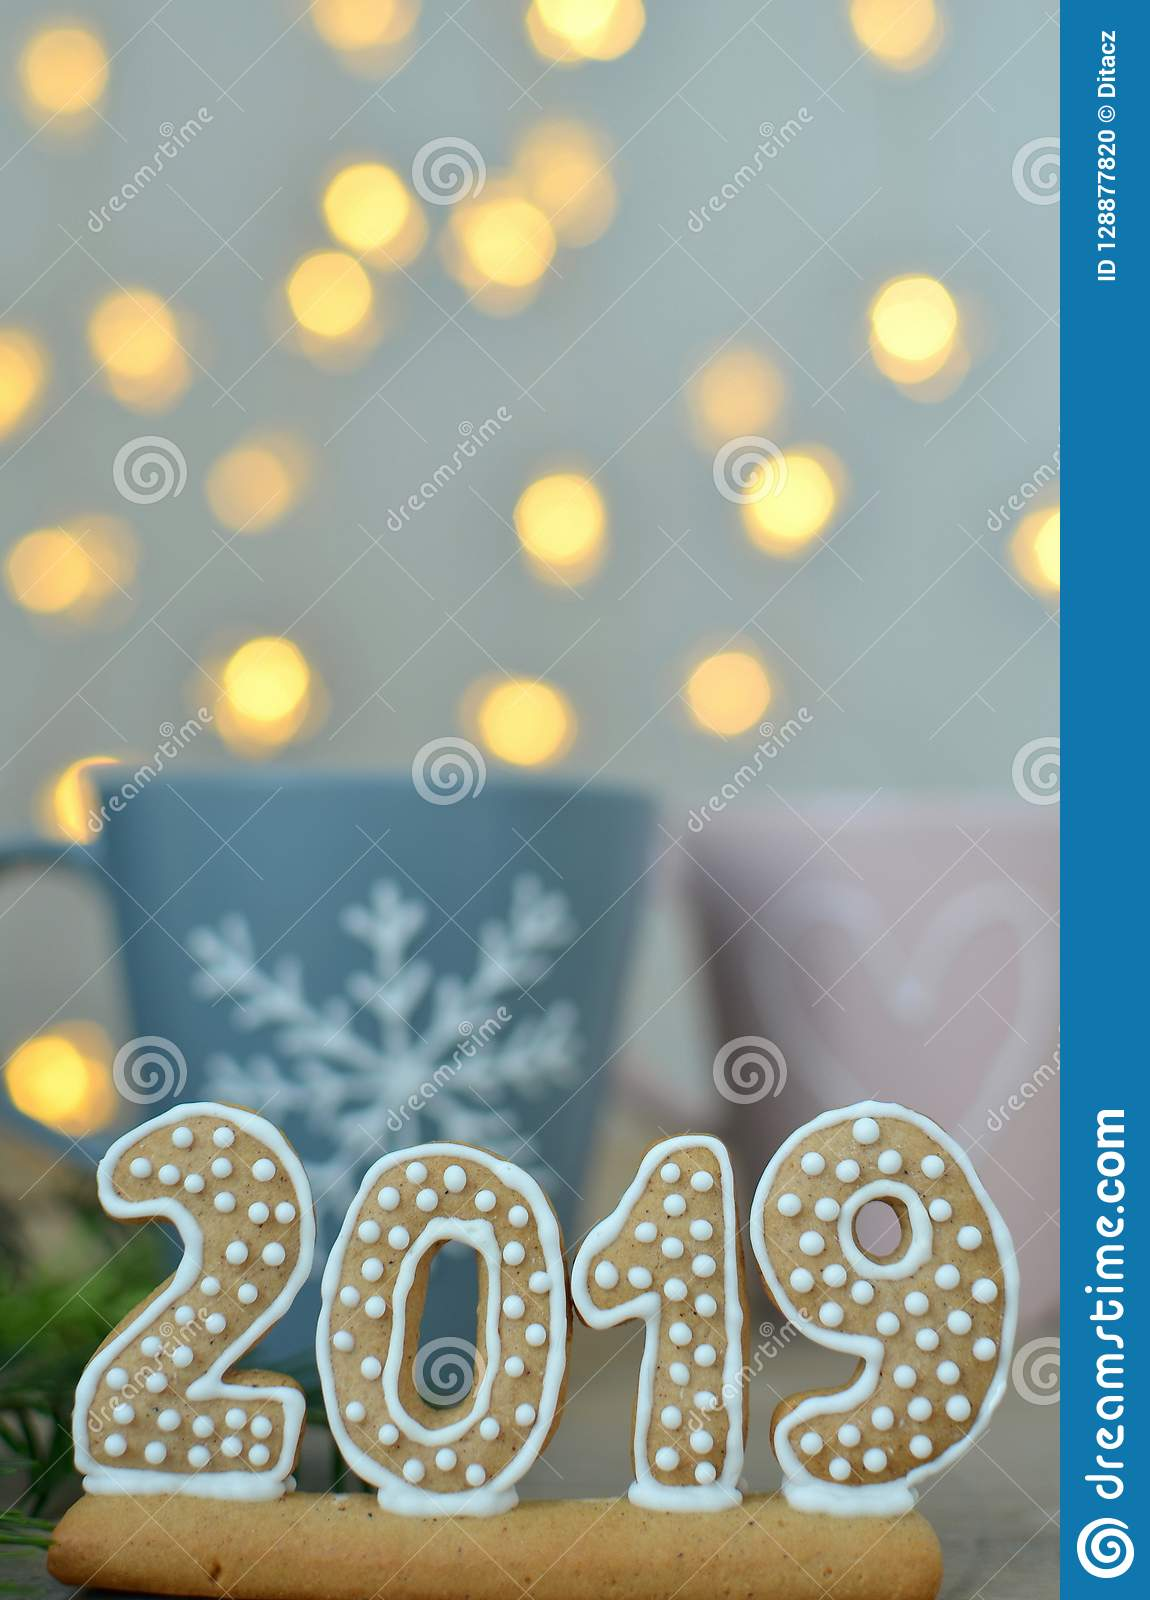 2019 Christmas Lights New Year 2019. Gingerbread Figures On A Wooden Board. Christmas